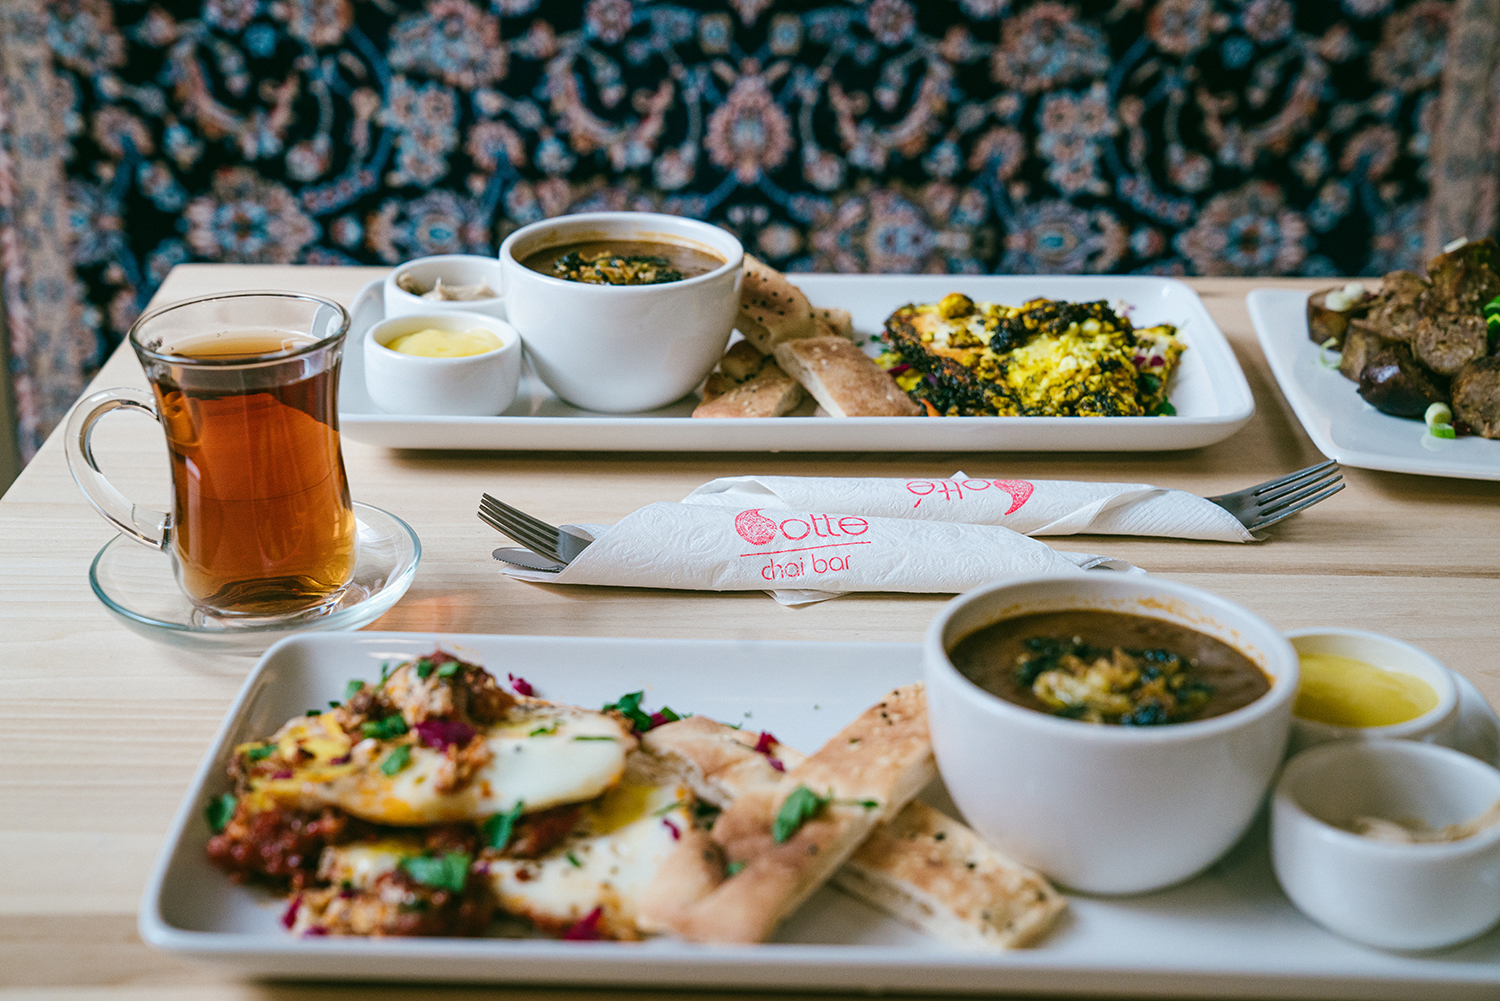 A number of weekend brunches are plated at Botte Chai Bar in Saskatoon Saskatchewan.